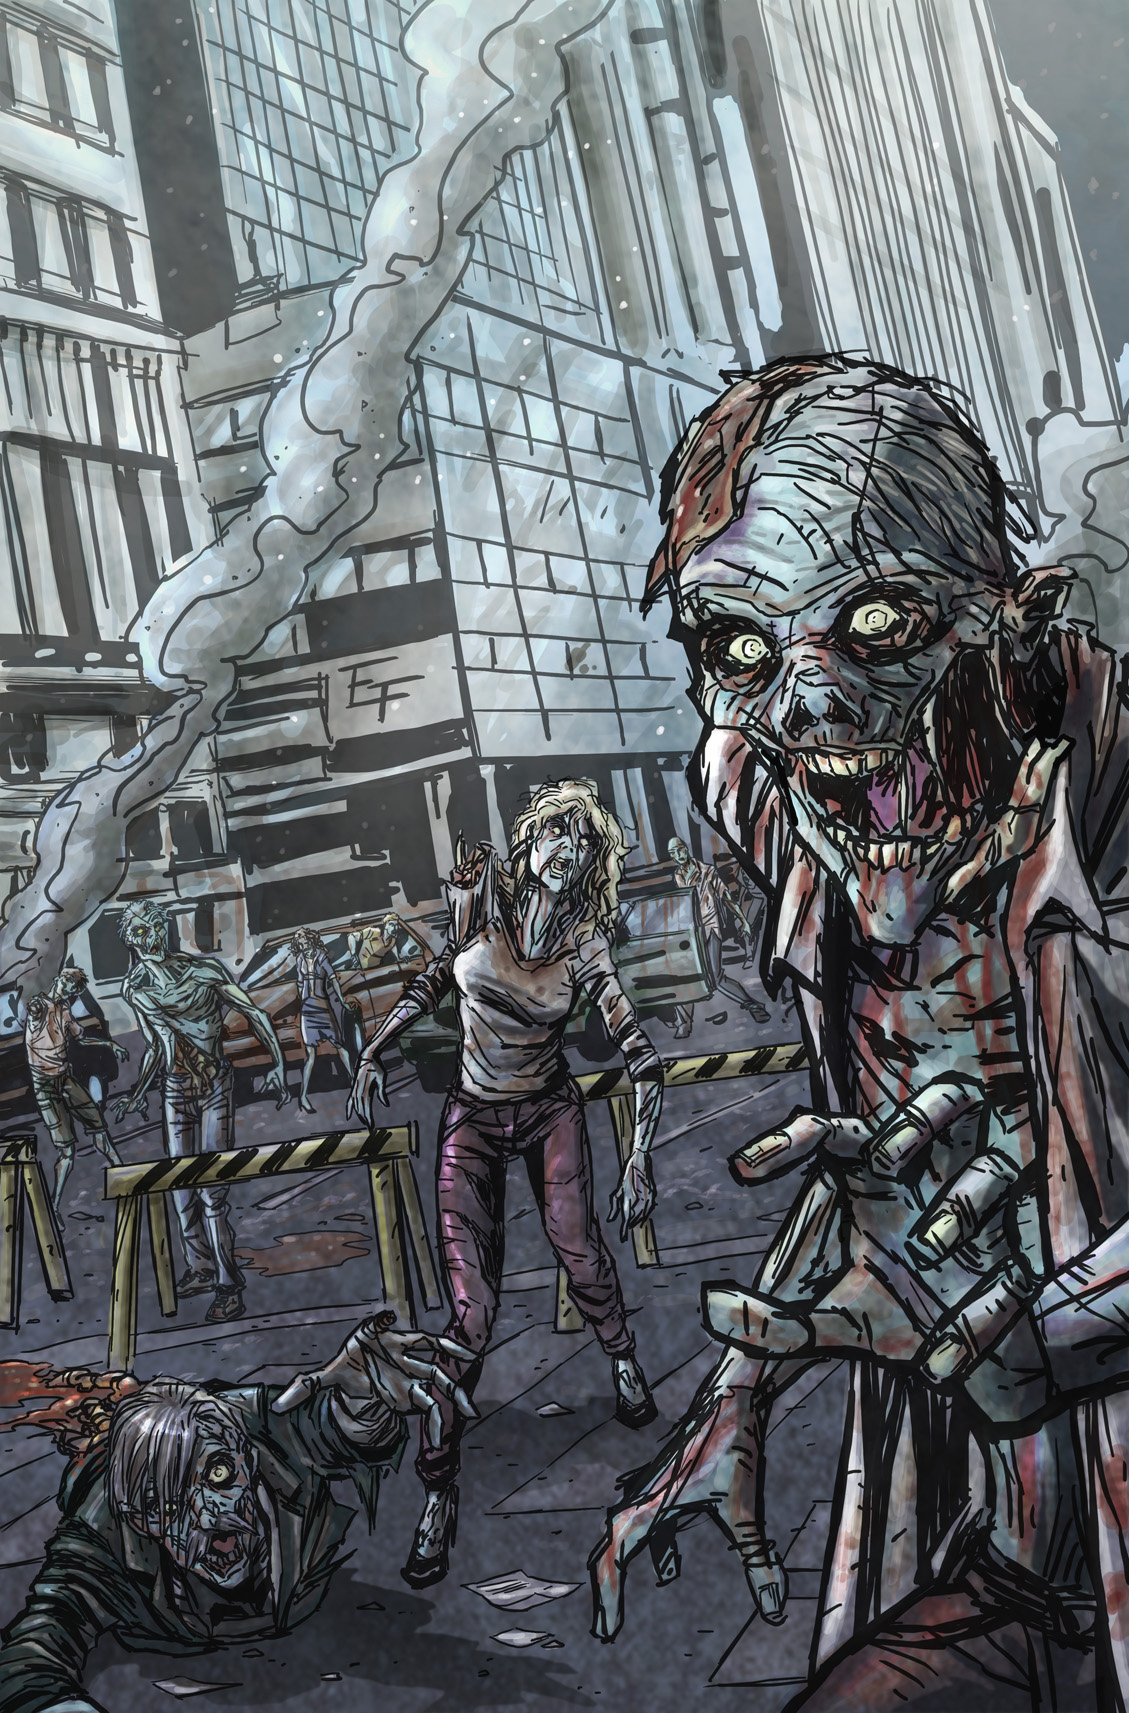 zombies_by_ferigato-d352ghp.jpg